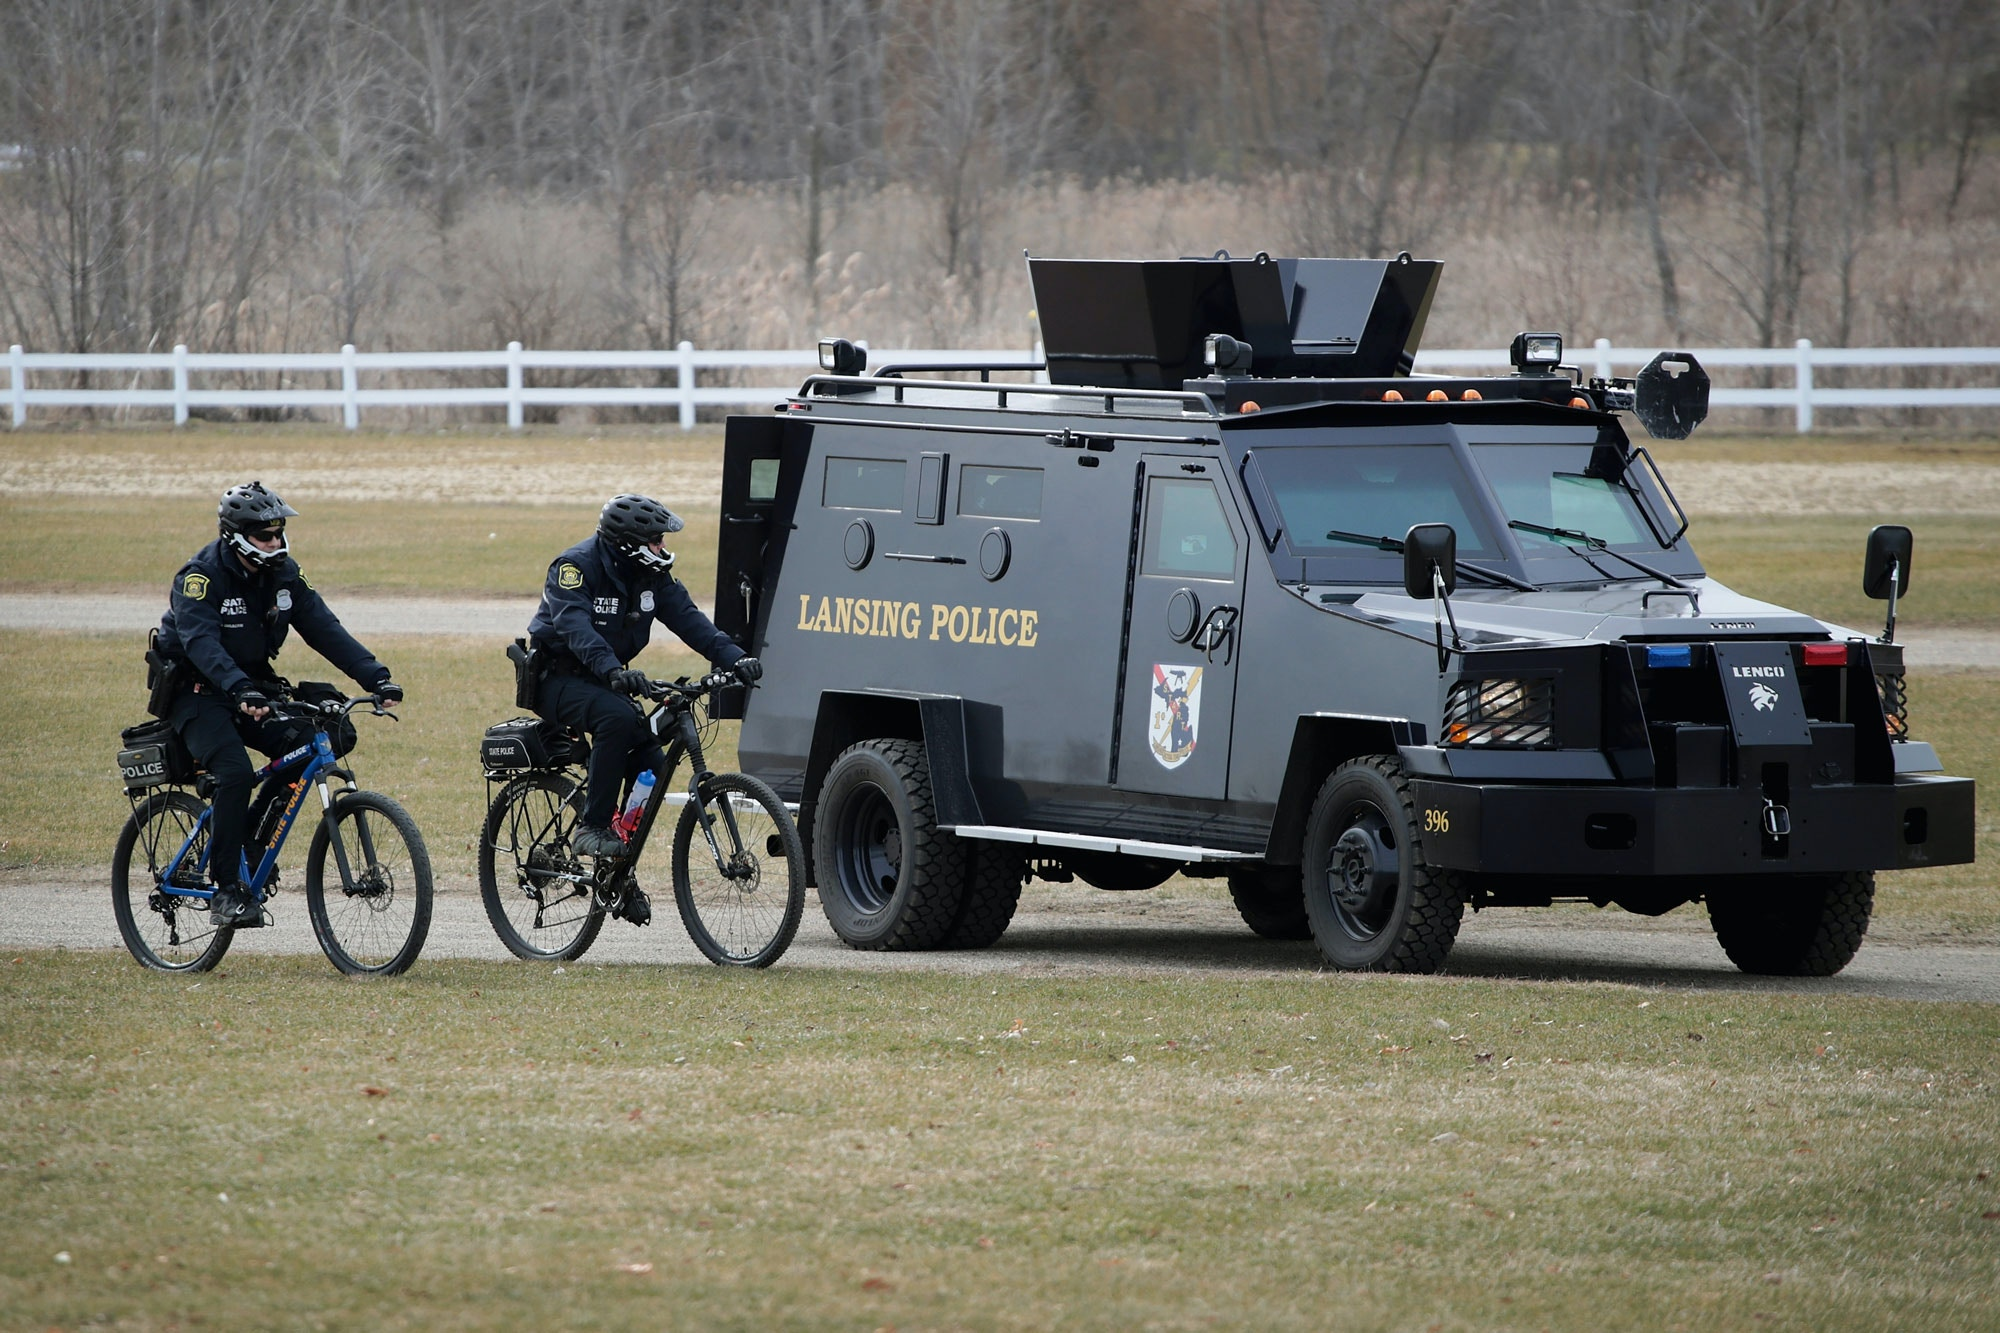 EAST LANSING, MI - MARCH 05:  Police watch as demonstrators at Michigan State University protest a speech by white nationalist Richard Spencer, who popularized the term 'alt-right', on March 5, 2018 in East Lansing, Michigan. Spencer was granted permission to speak after suing the university which is currently on spring break.  (Photo by Scott Olson/Getty Images)